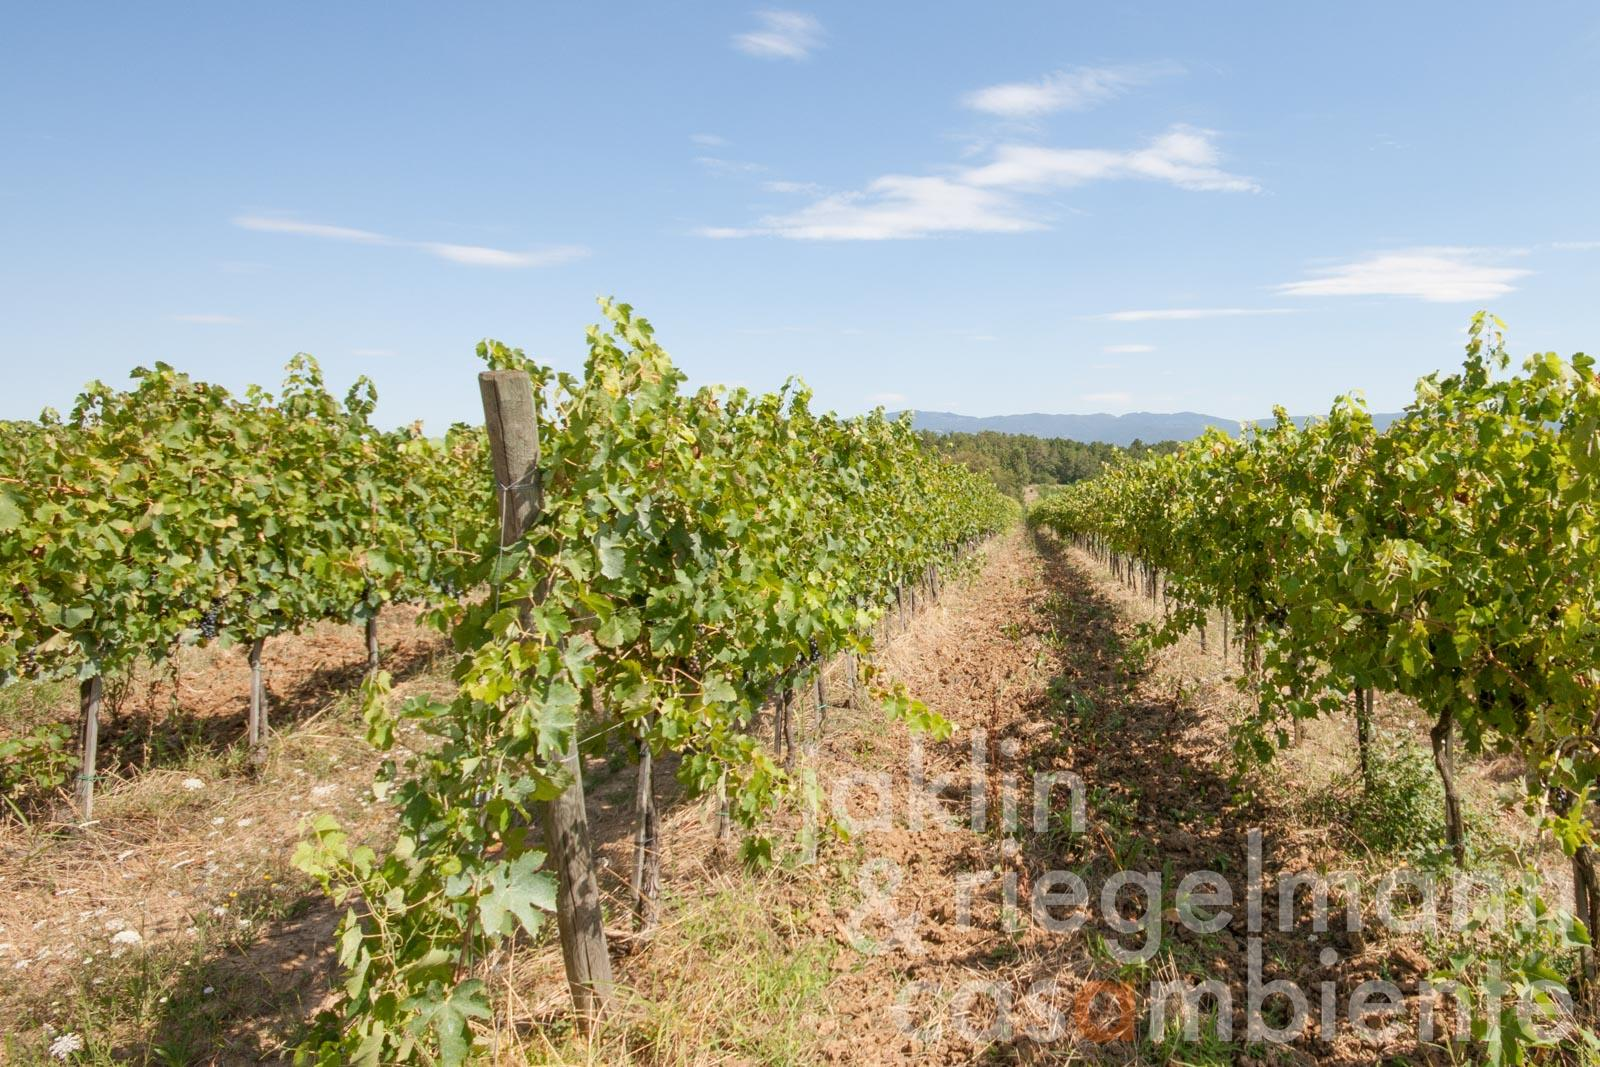 Well-known DOCG Vino Nobile di Montepulciano producer for sale with 30 hectares of vineyards